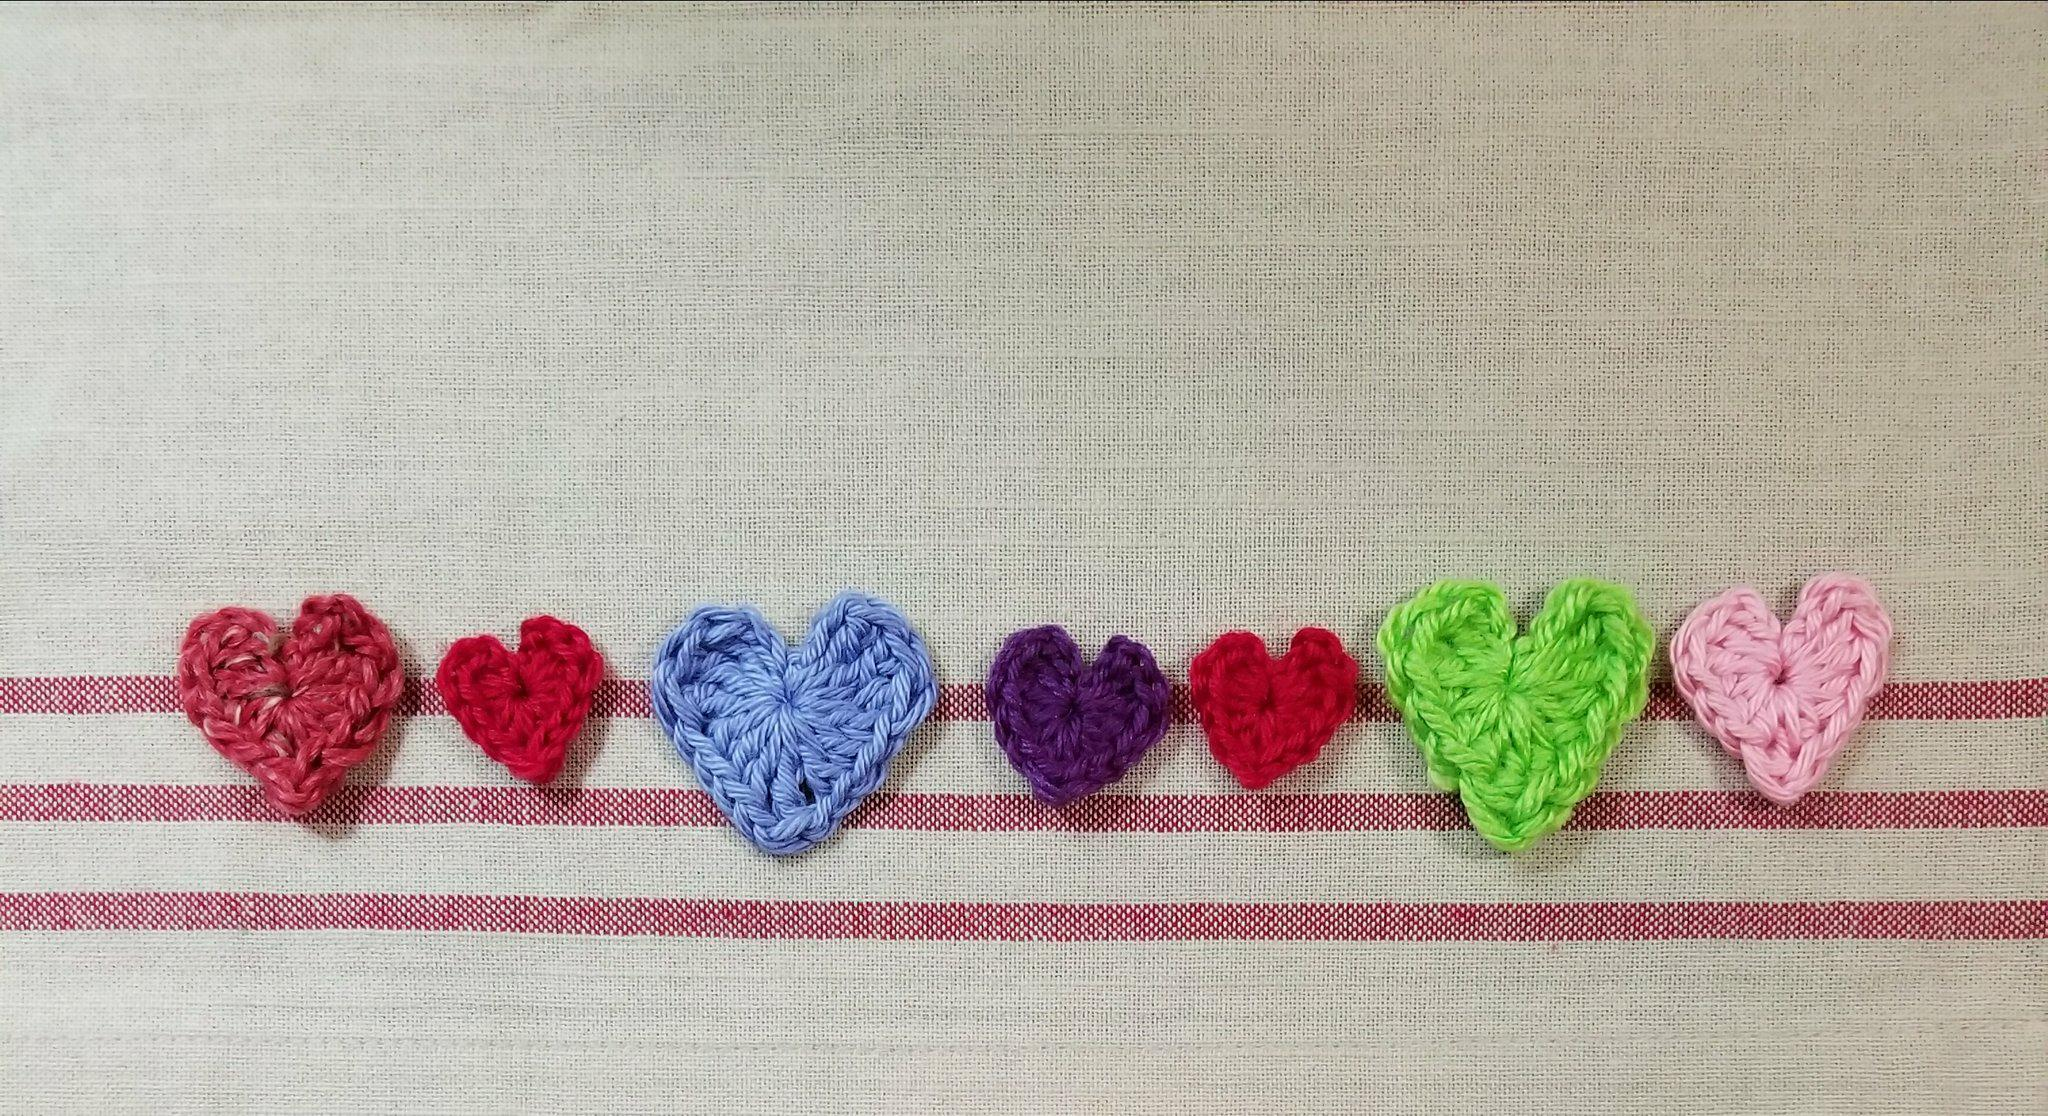 Crocheted Hearts – making little love tokens